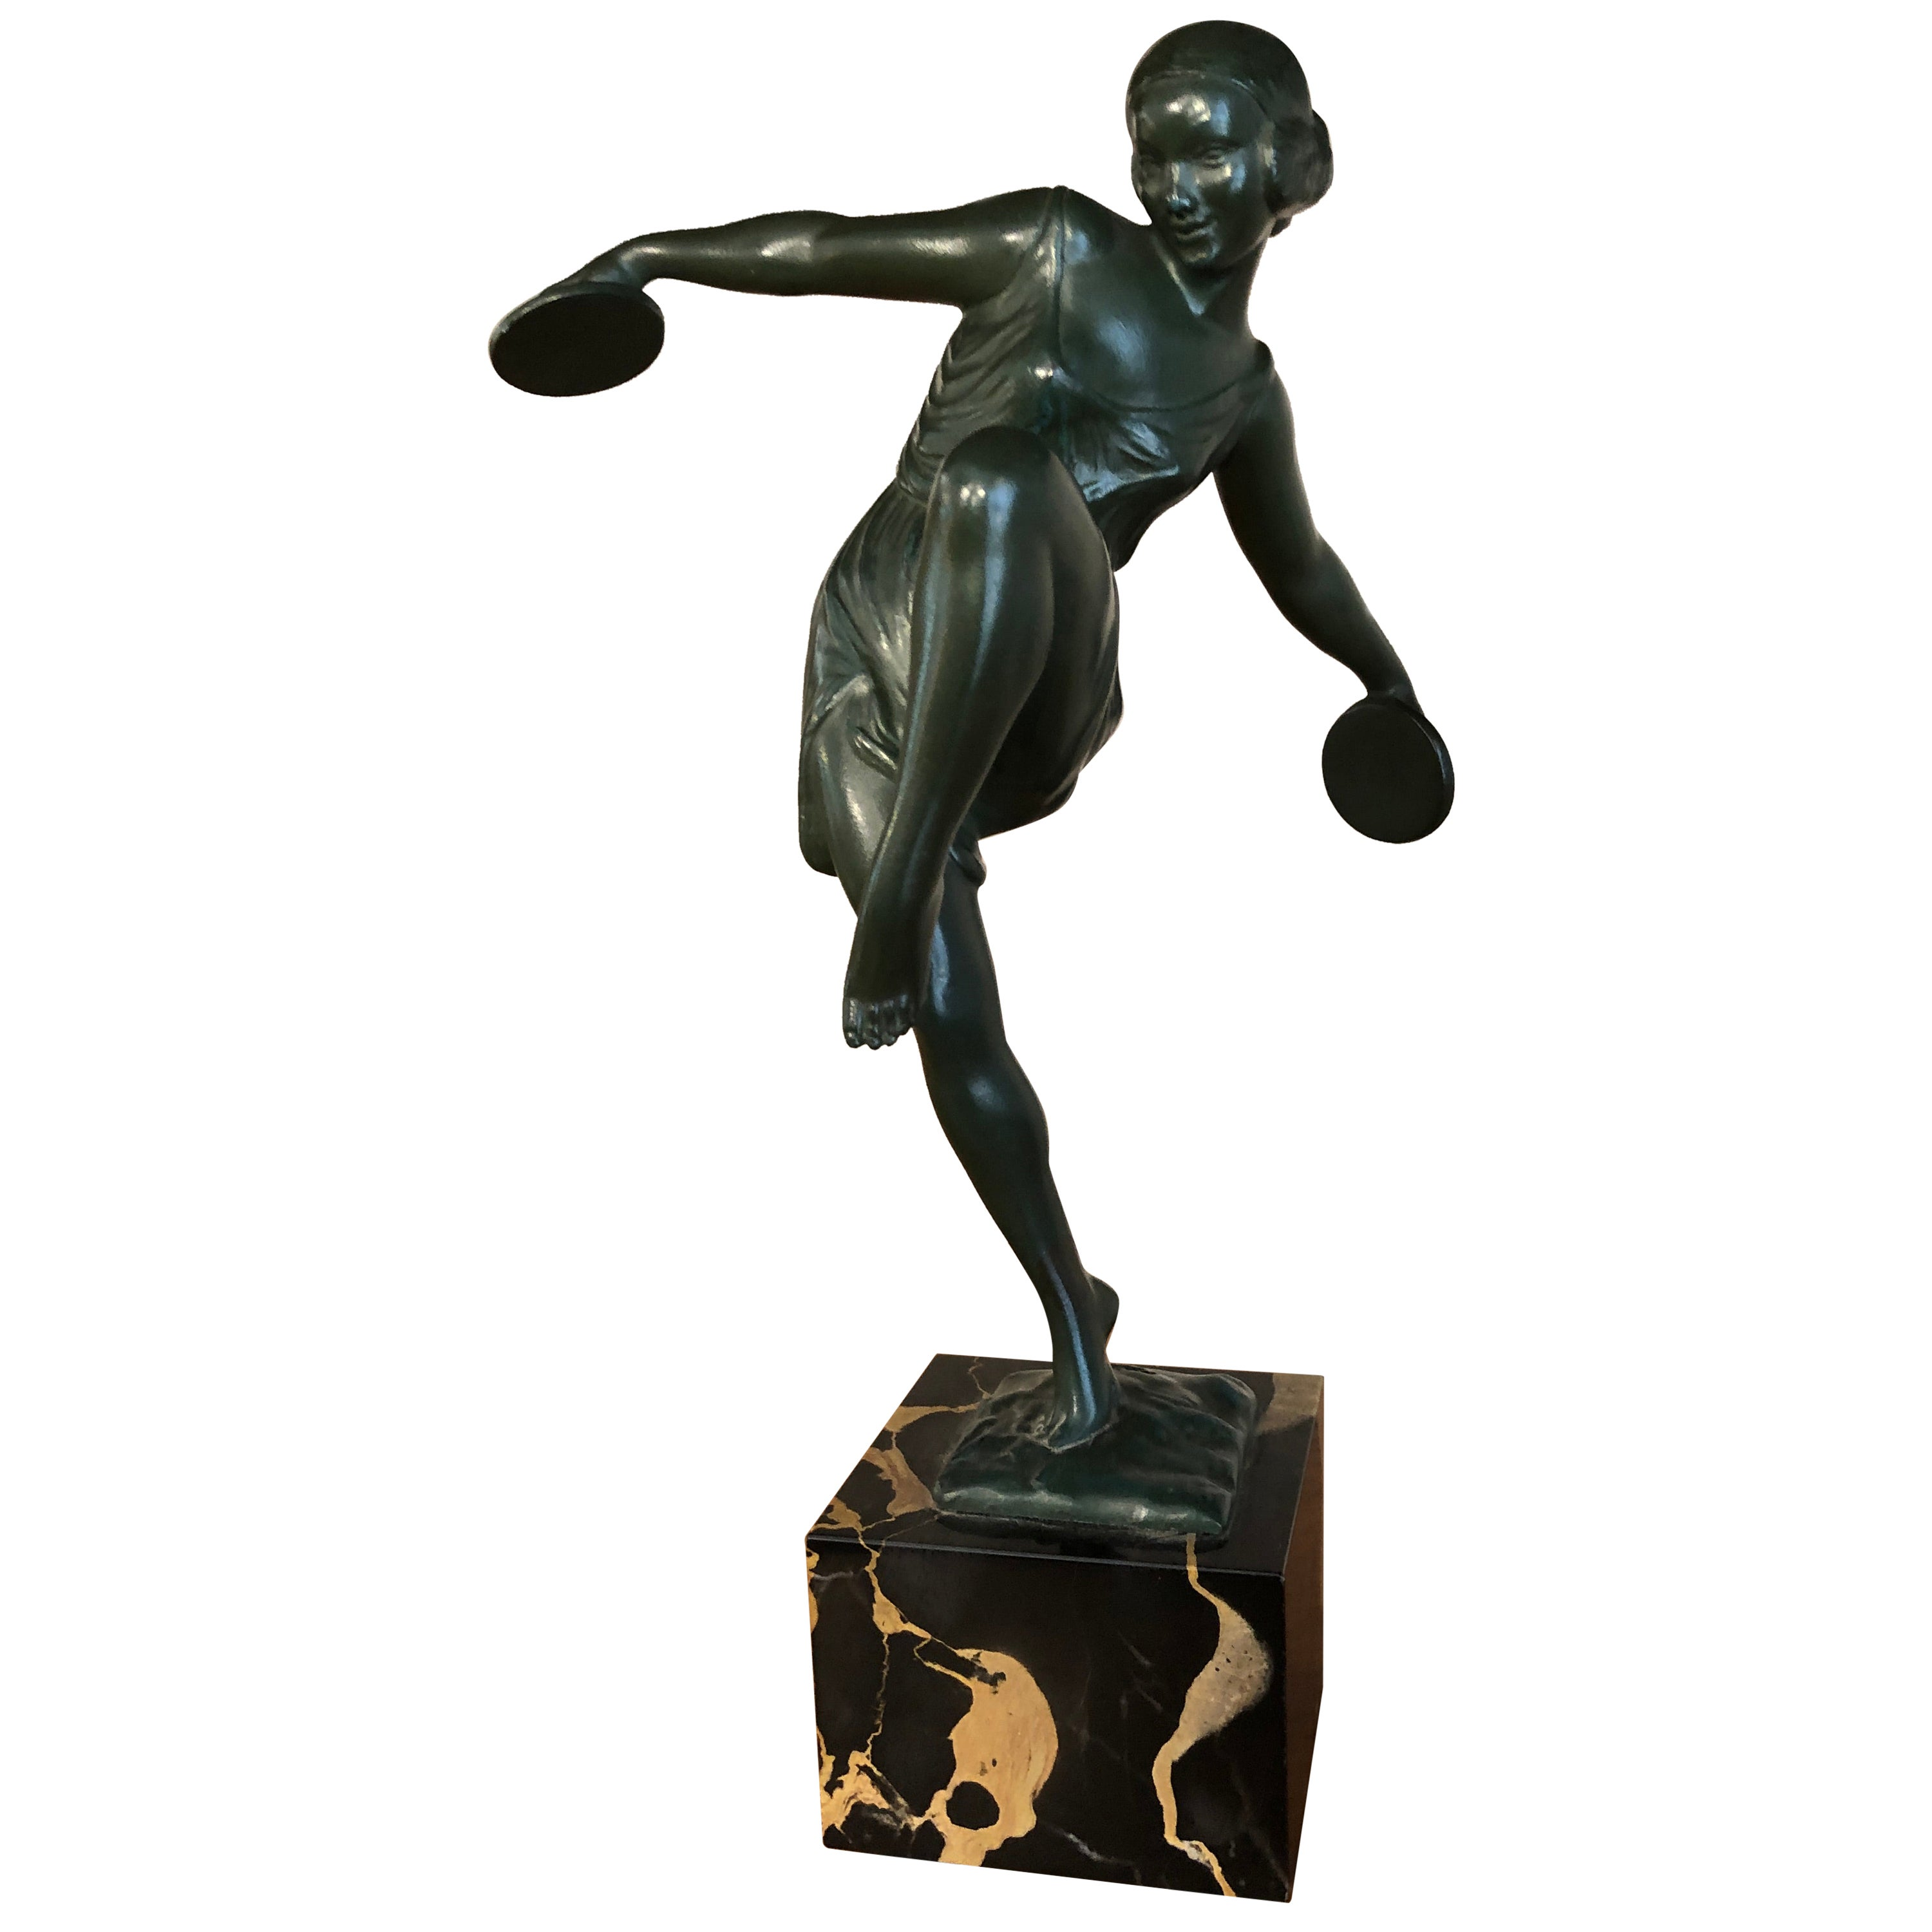 Art Deco Dancer with Cymbals Signed Fayral Sculpture on Mable Base